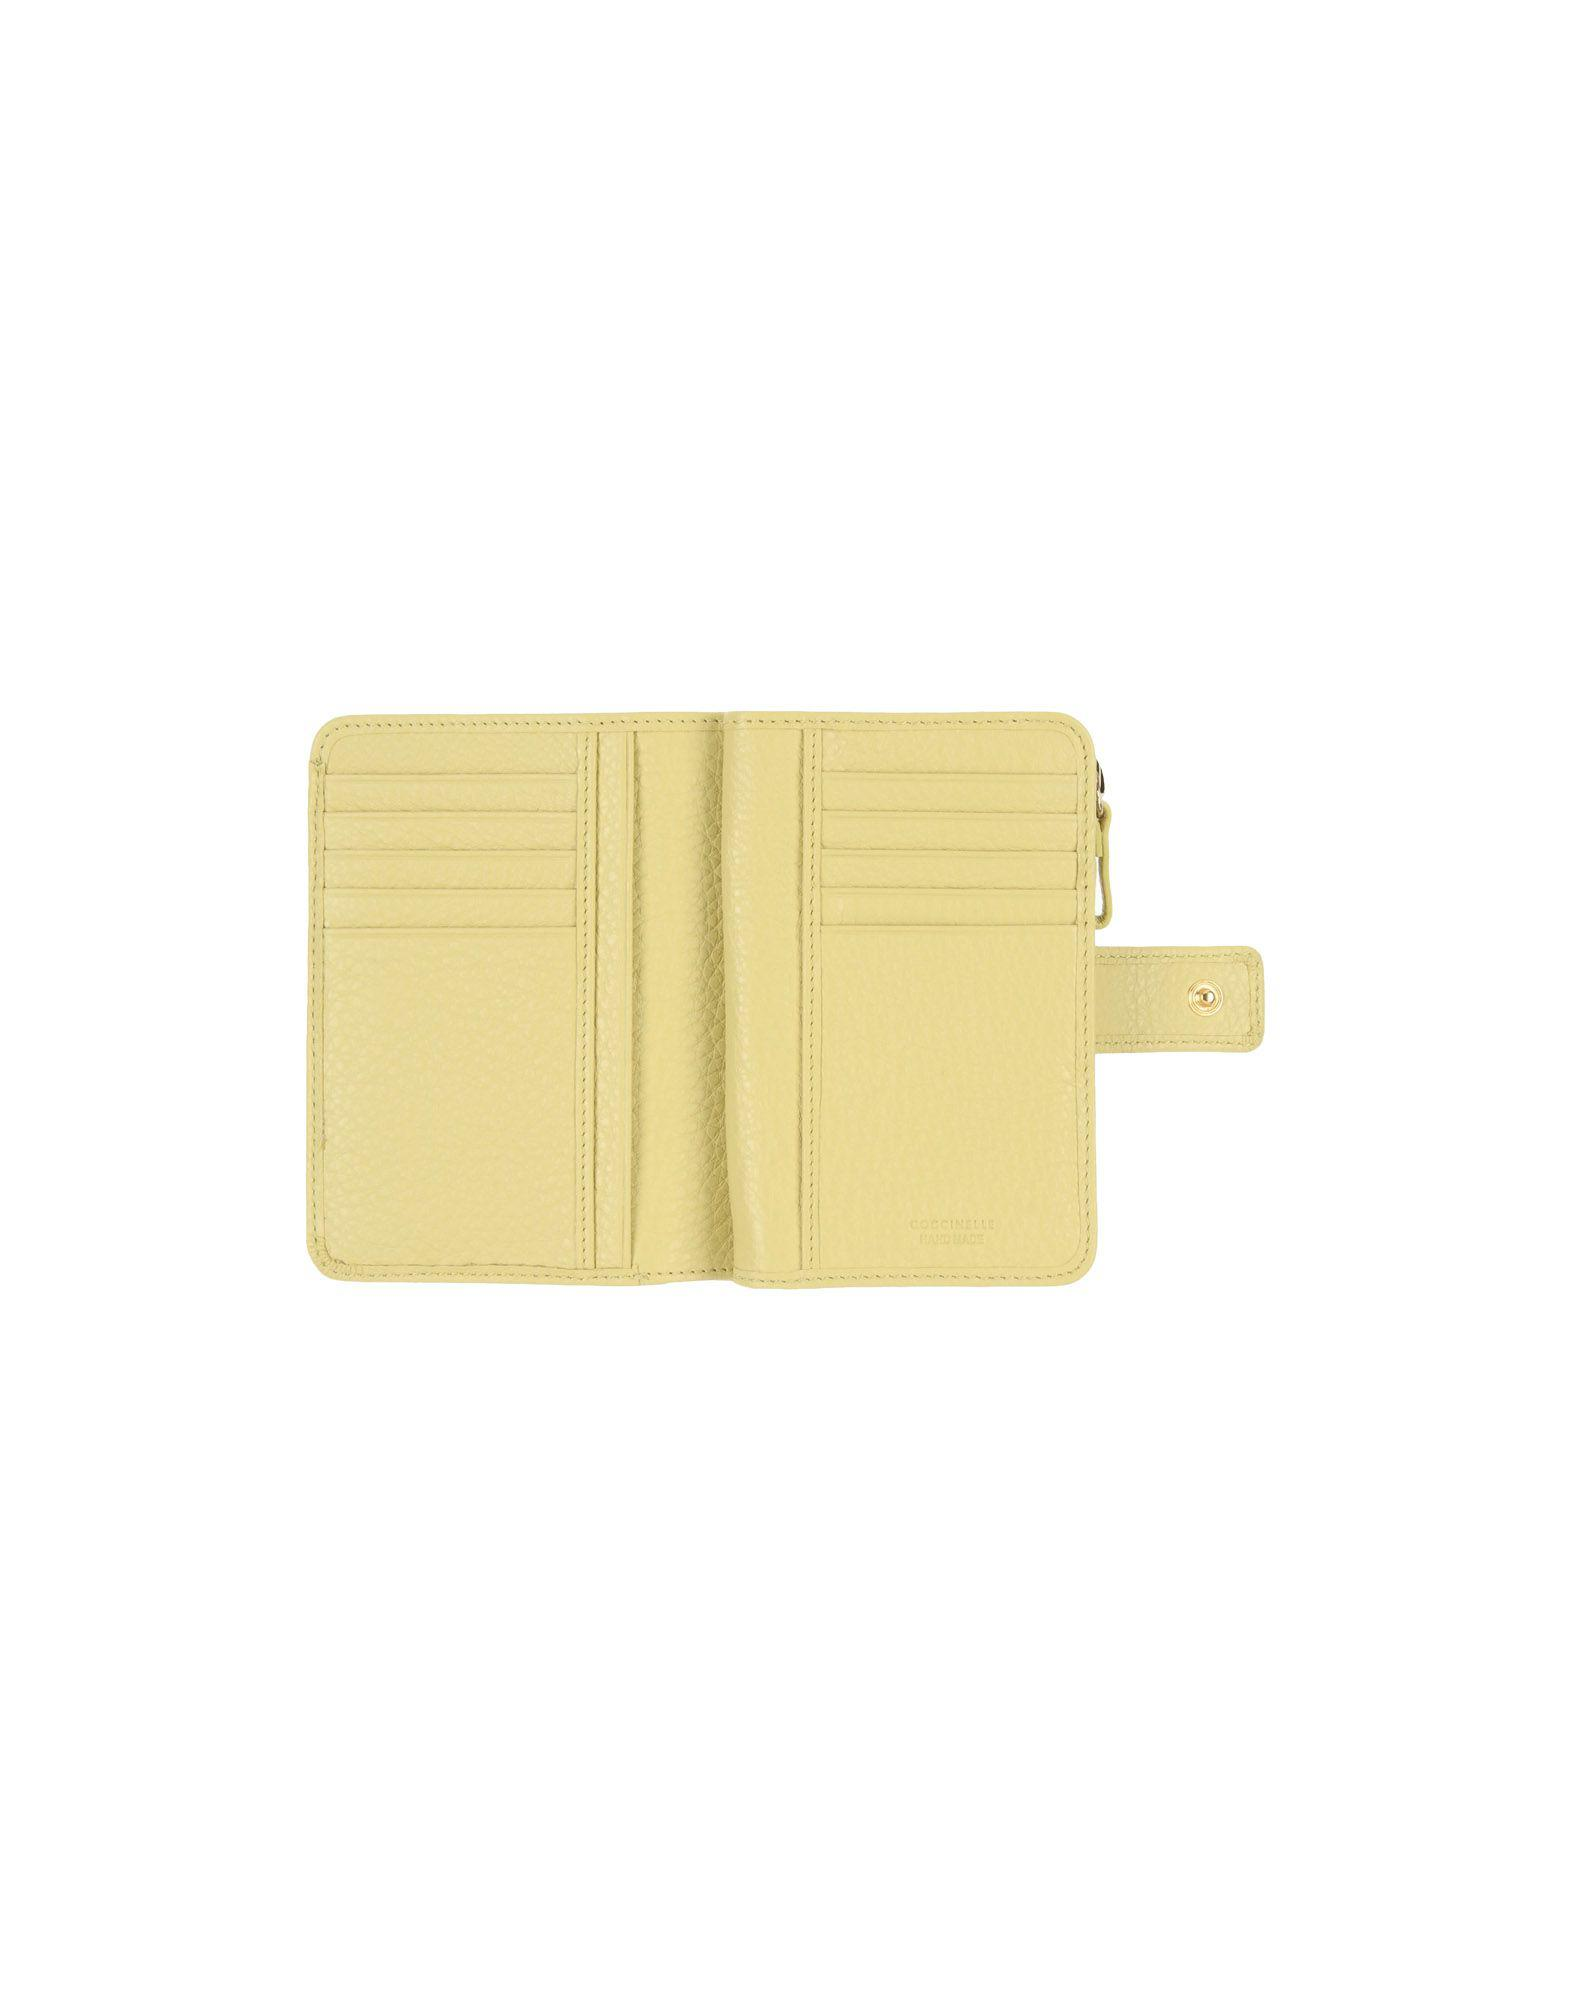 9ff92cd93c Lyst - Coccinelle Wallets in Yellow